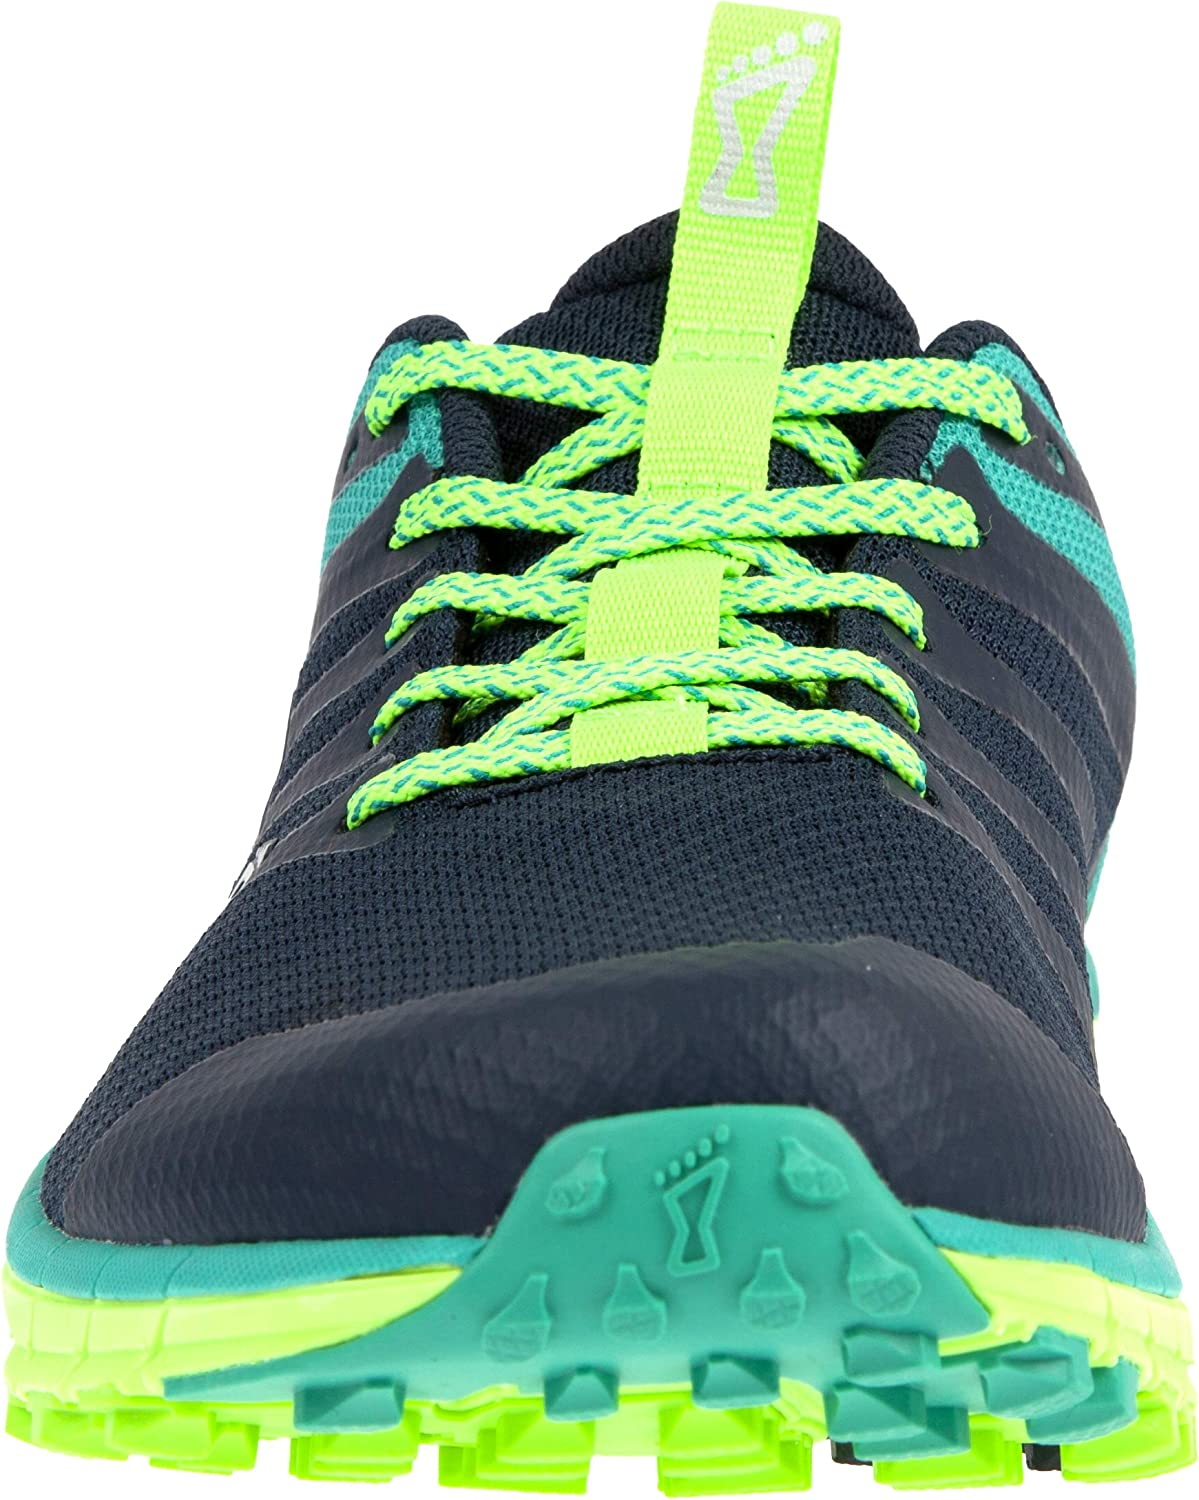 Trail Running Shoe Wide Fit Perfect Shoe to Transition from Road Running to Trail Running Inov-8 Womens Parkclaw 275